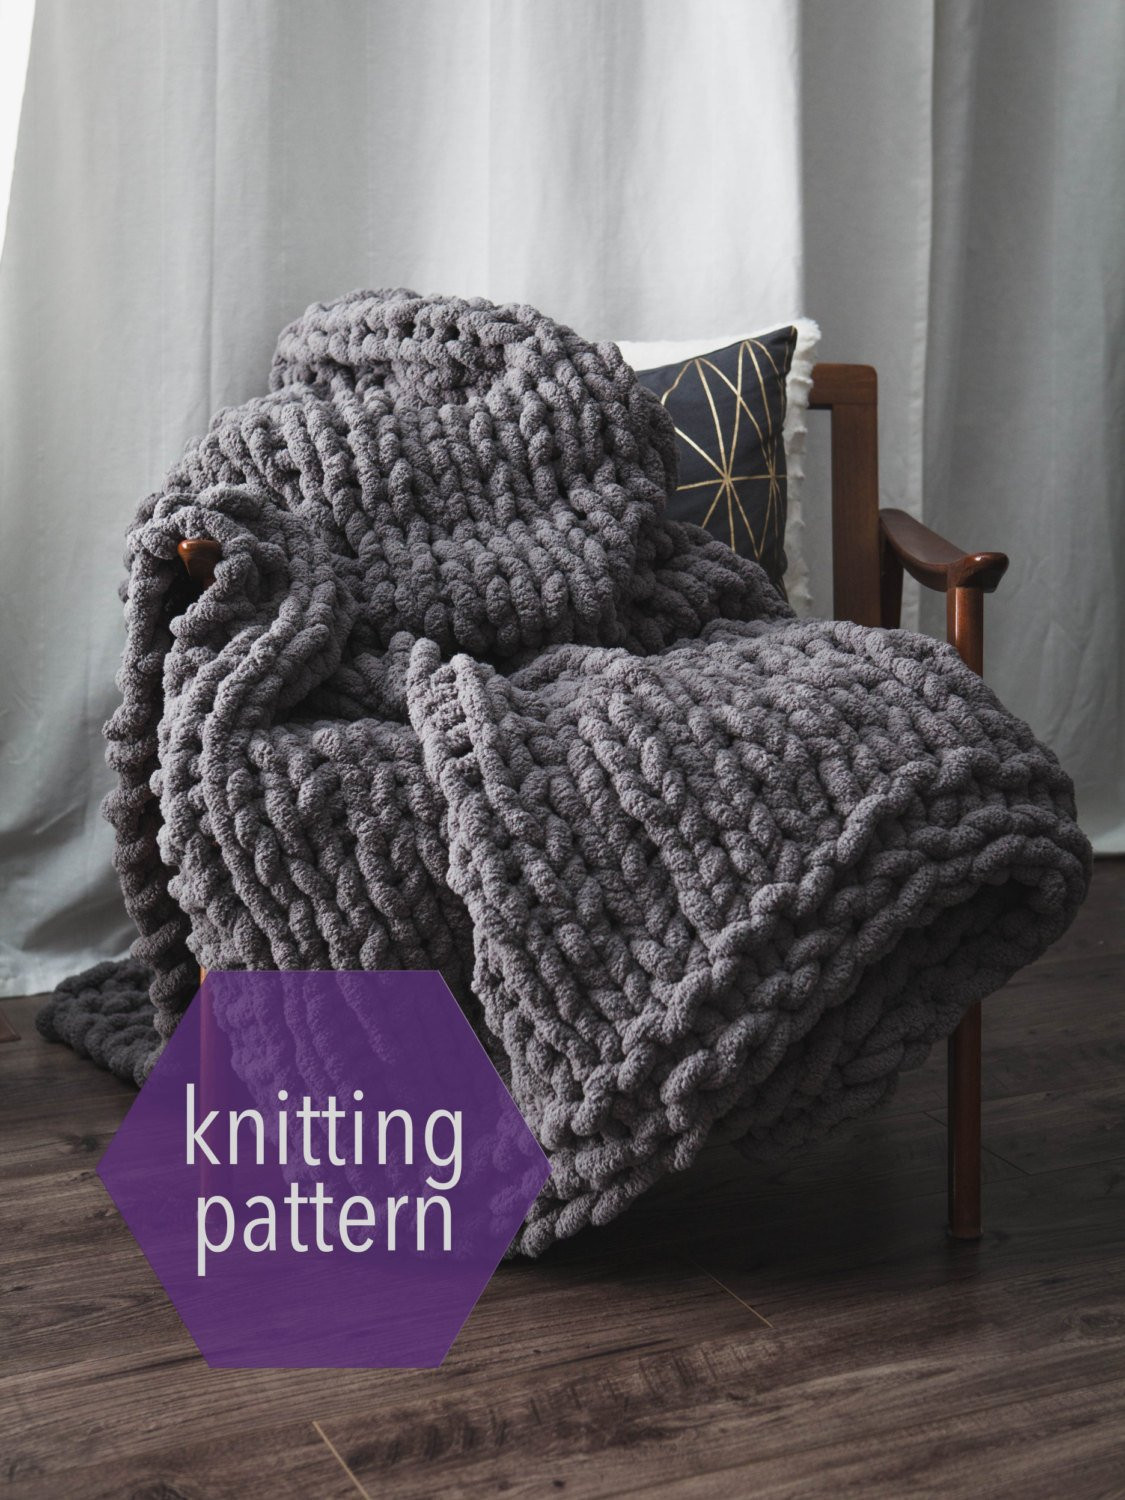 Chunky Knit Blanket Pattern Awesome Huge Chunky Knit Blanket Knitting Pattern Instant Download Of Delightful 41 Pictures Chunky Knit Blanket Pattern